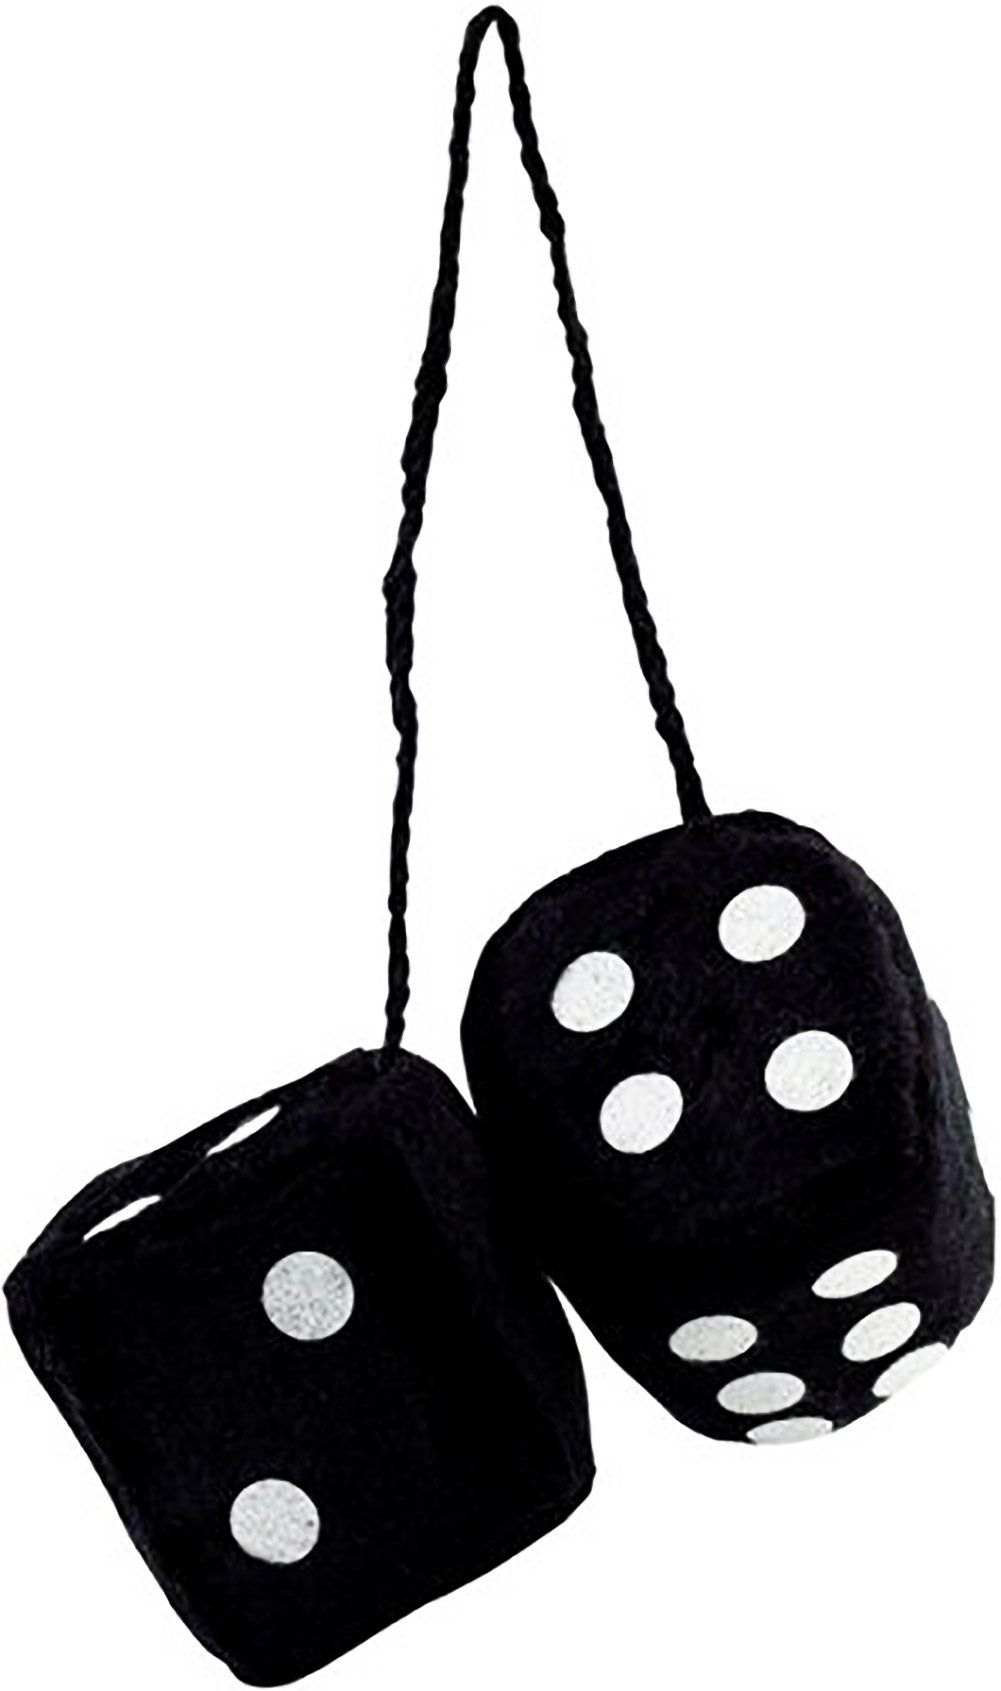 """Cool & Custom {3"""" Inch w/ String} Single Pair of """"Fuzzy, Furry & Fluffy Plush Dice"""" Rear View Mirror Hanging Ornament Decoration w/ Classy Vintage Muscle Car Design [Scion Black and White Color]"""